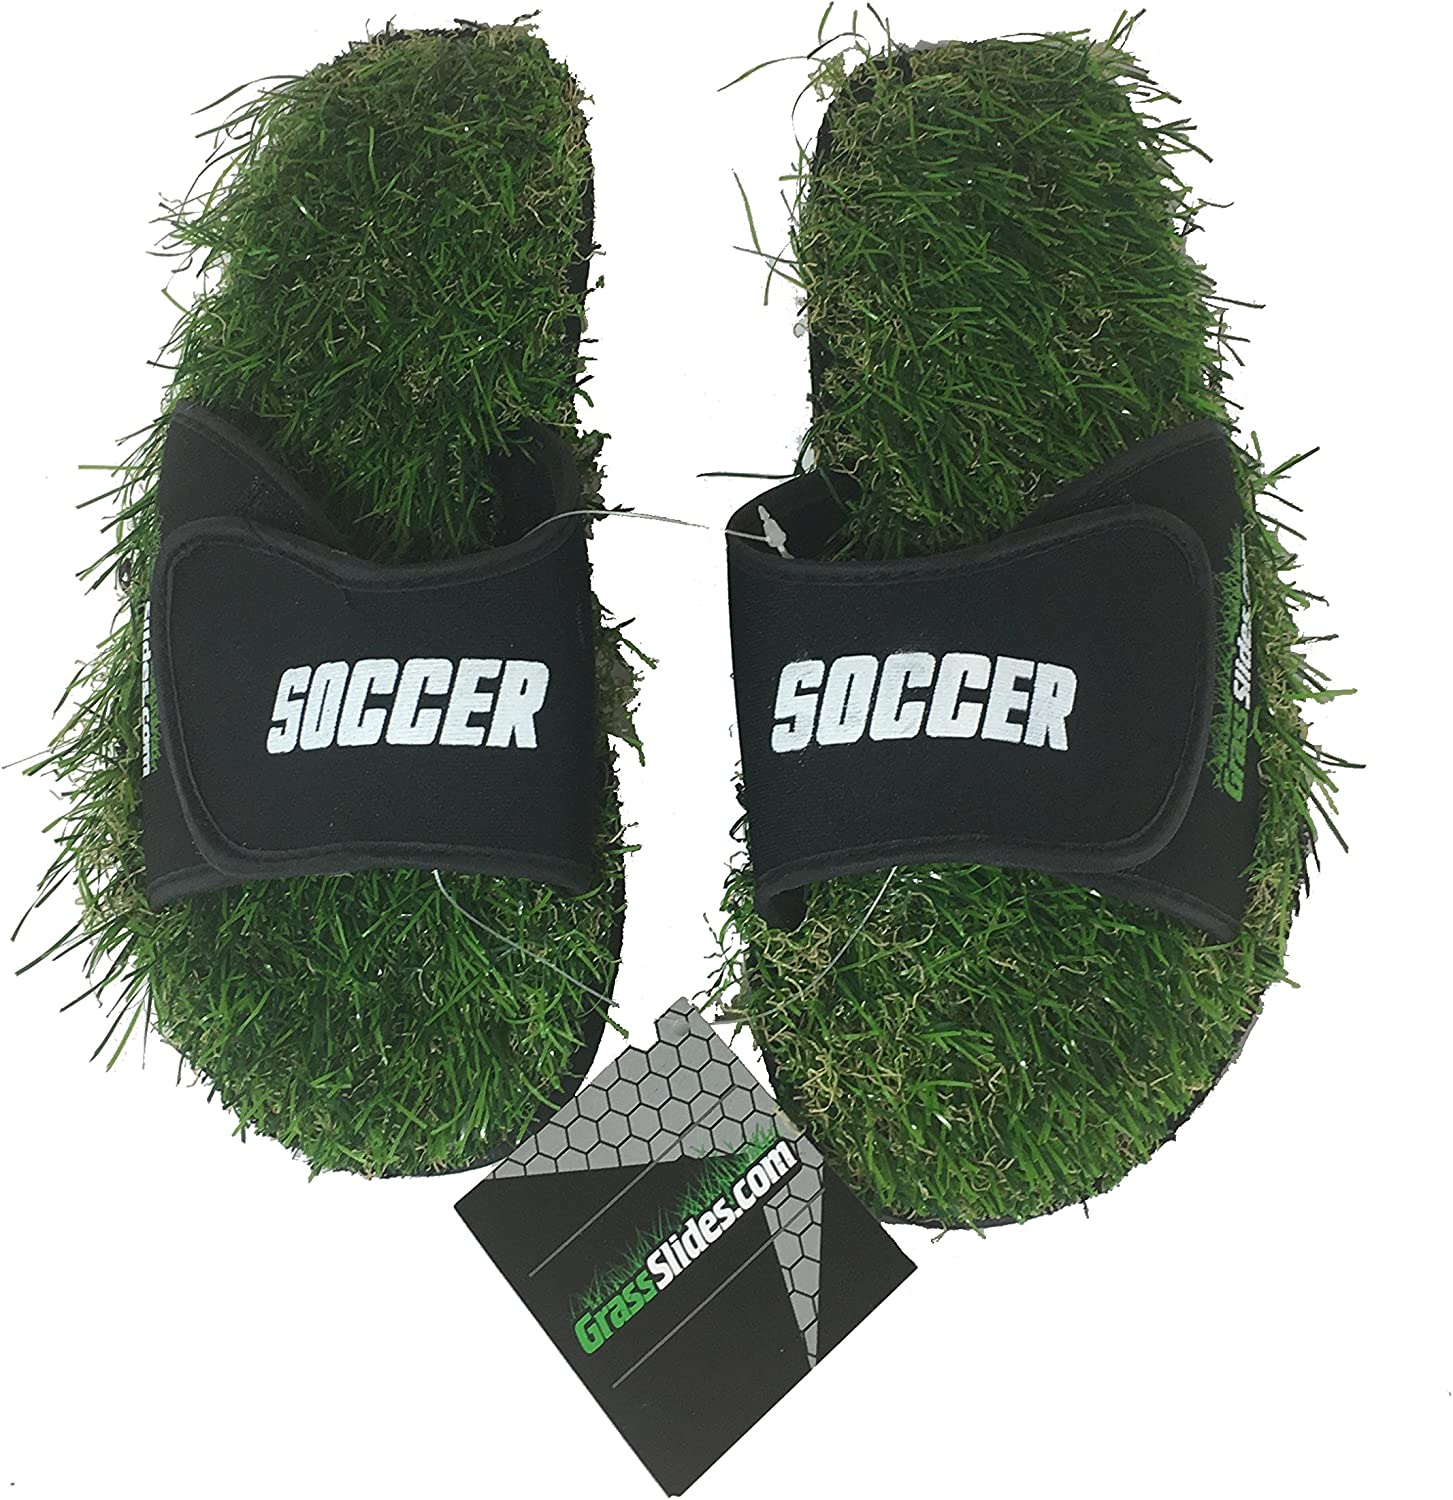 GrassSlides Soccer shoes are Made from Real Turf, Slippers, Sandals, flip Flops, Slips. Green